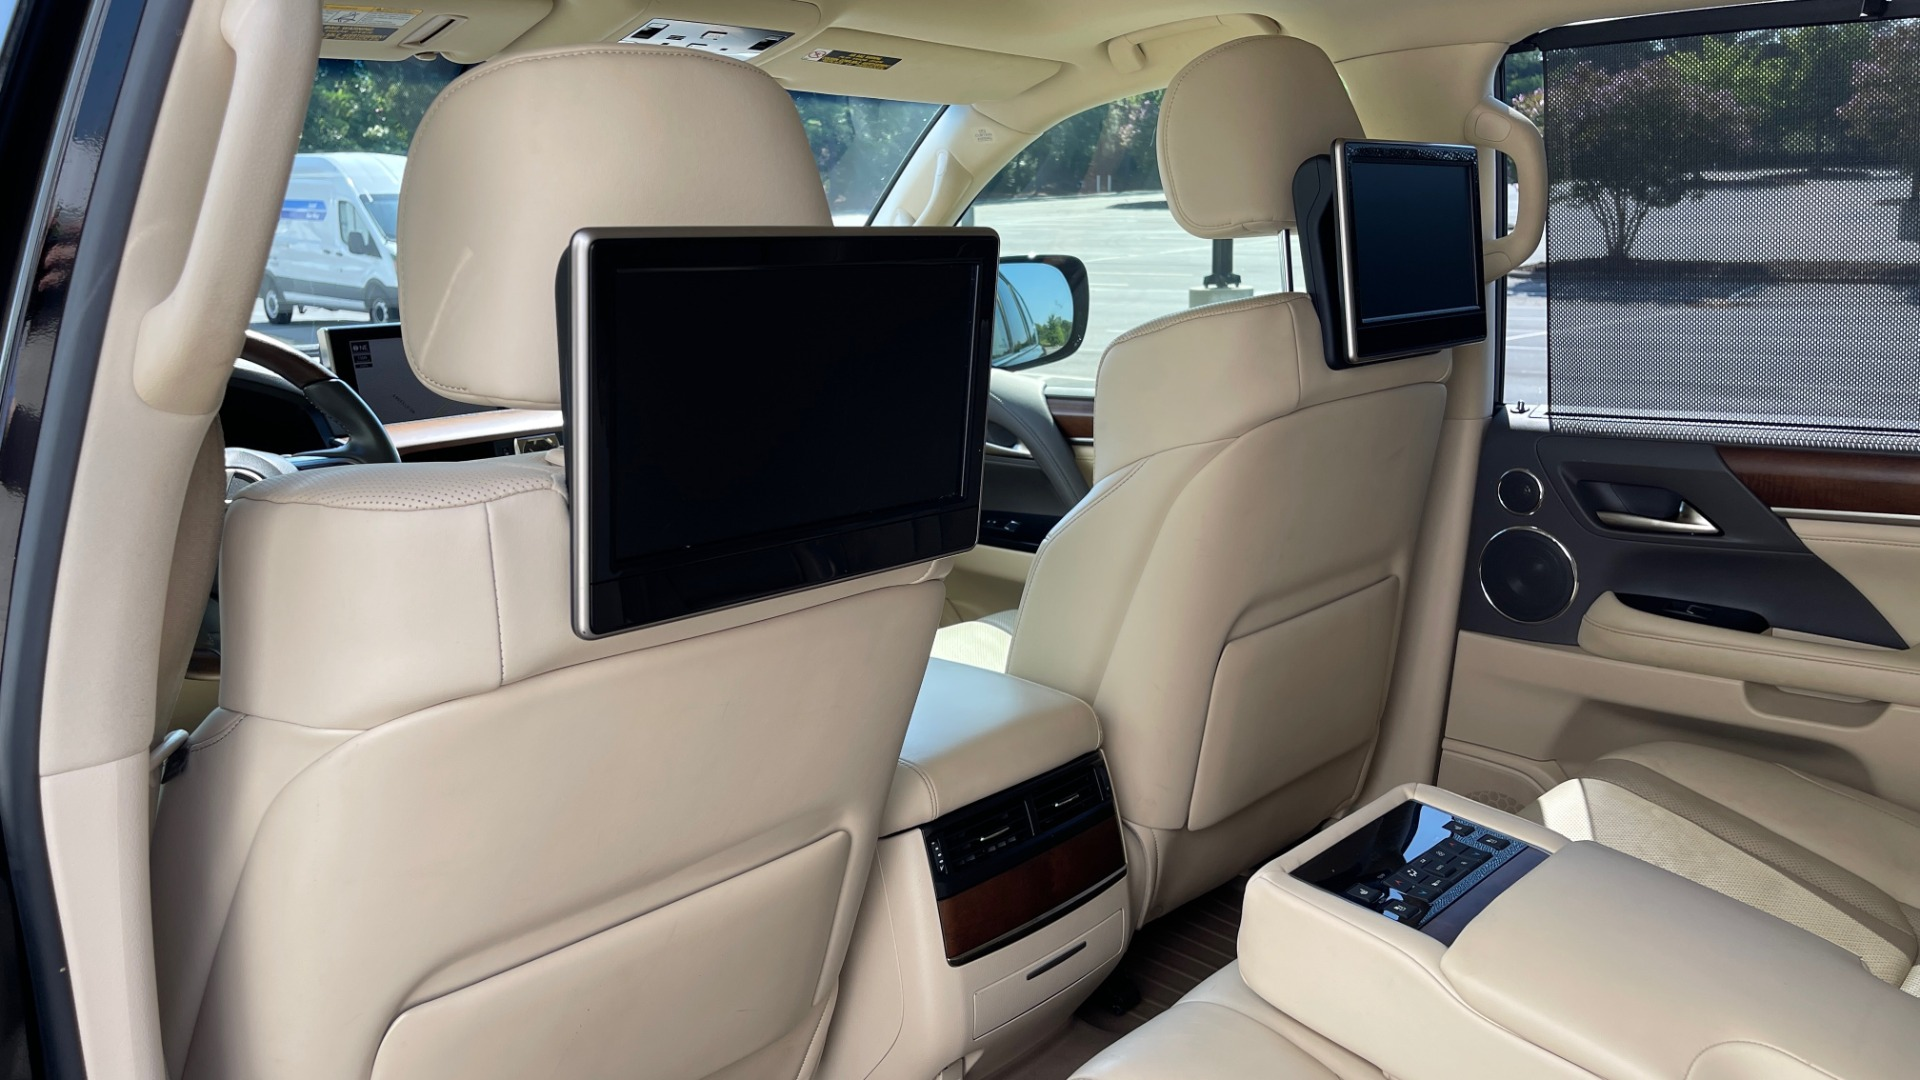 Used 2017 Lexus LX 570 LUXURY / 5.7L V8 / NAV / SUNROOF / 3-ROW / DVD / REARVIEW for sale $63,995 at Formula Imports in Charlotte NC 28227 52